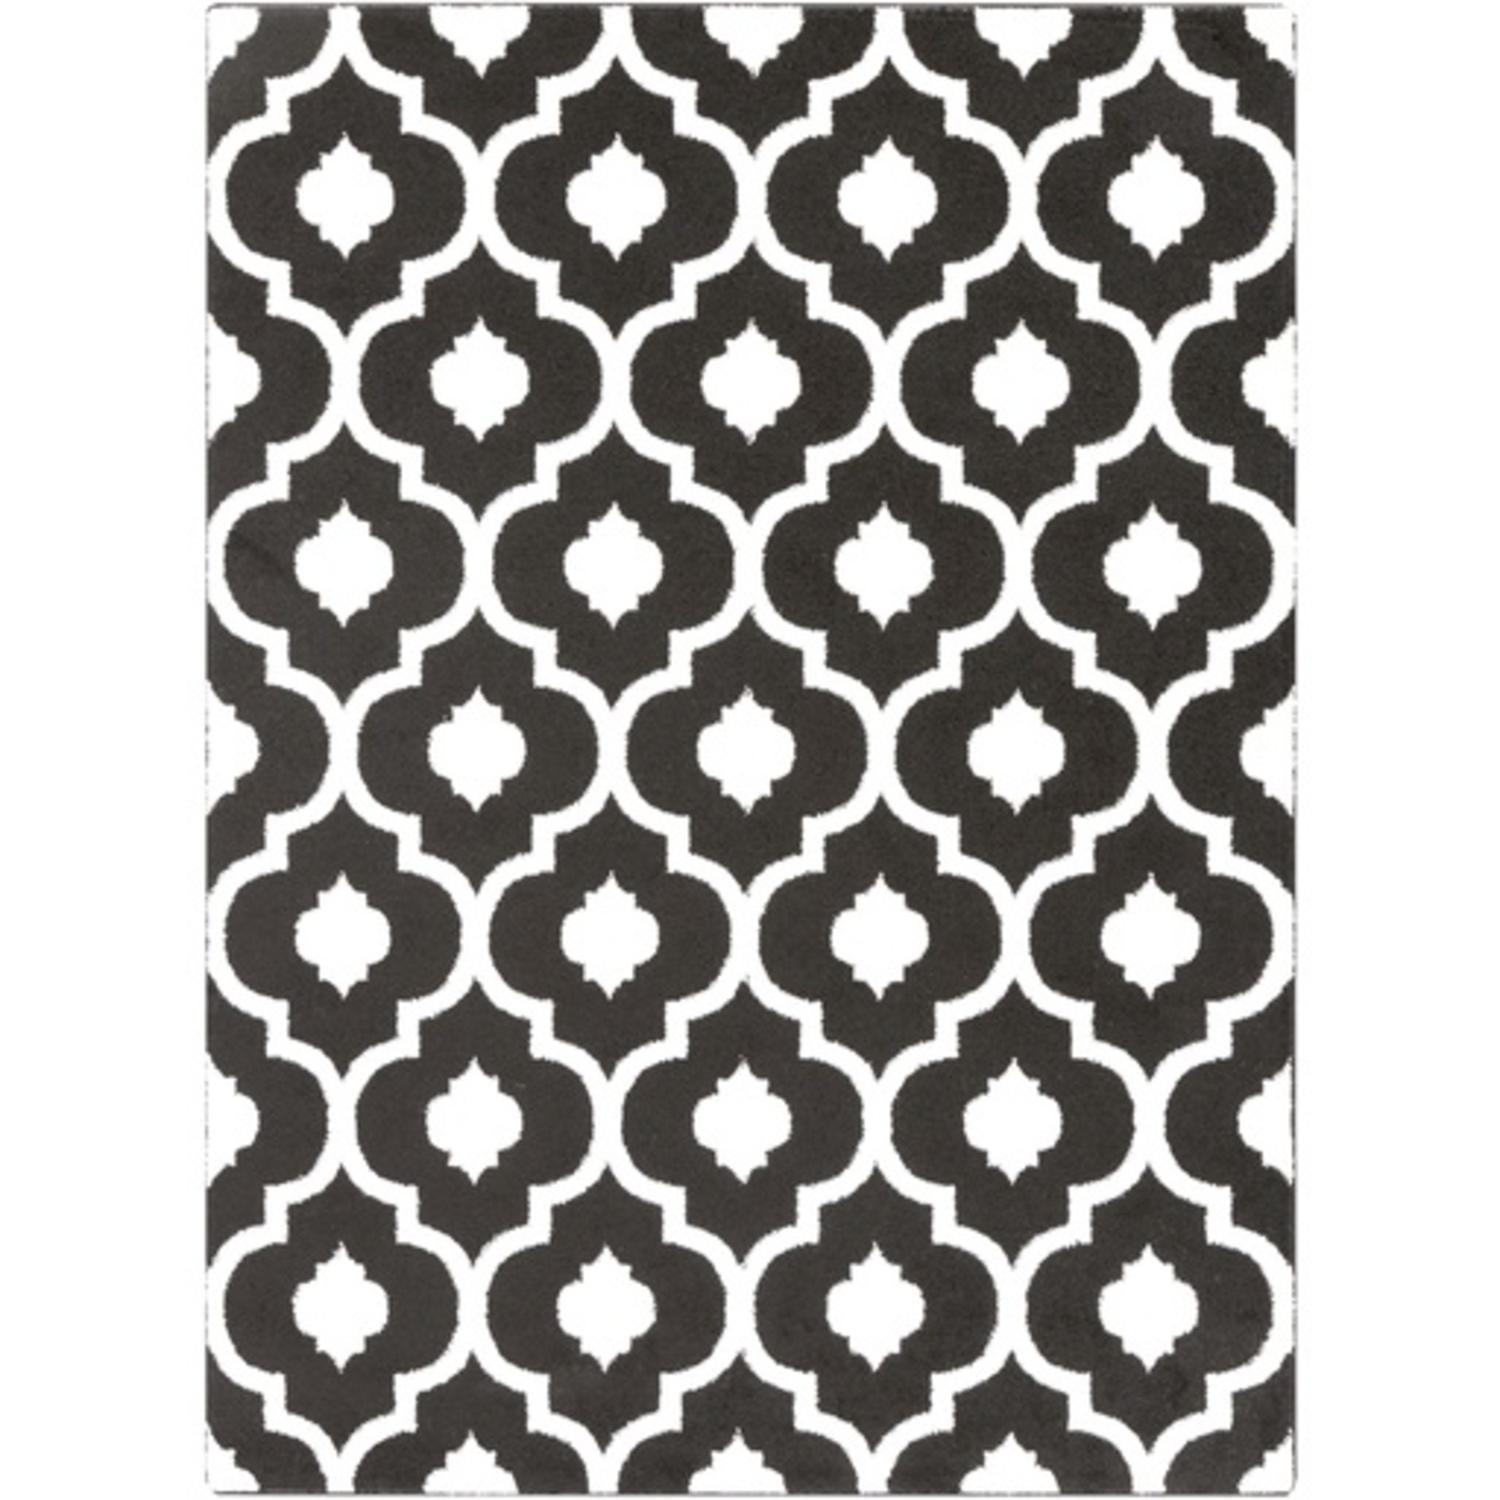 2' x 3' Spaded Flush Black and White Shed-Free Area Throw Rug